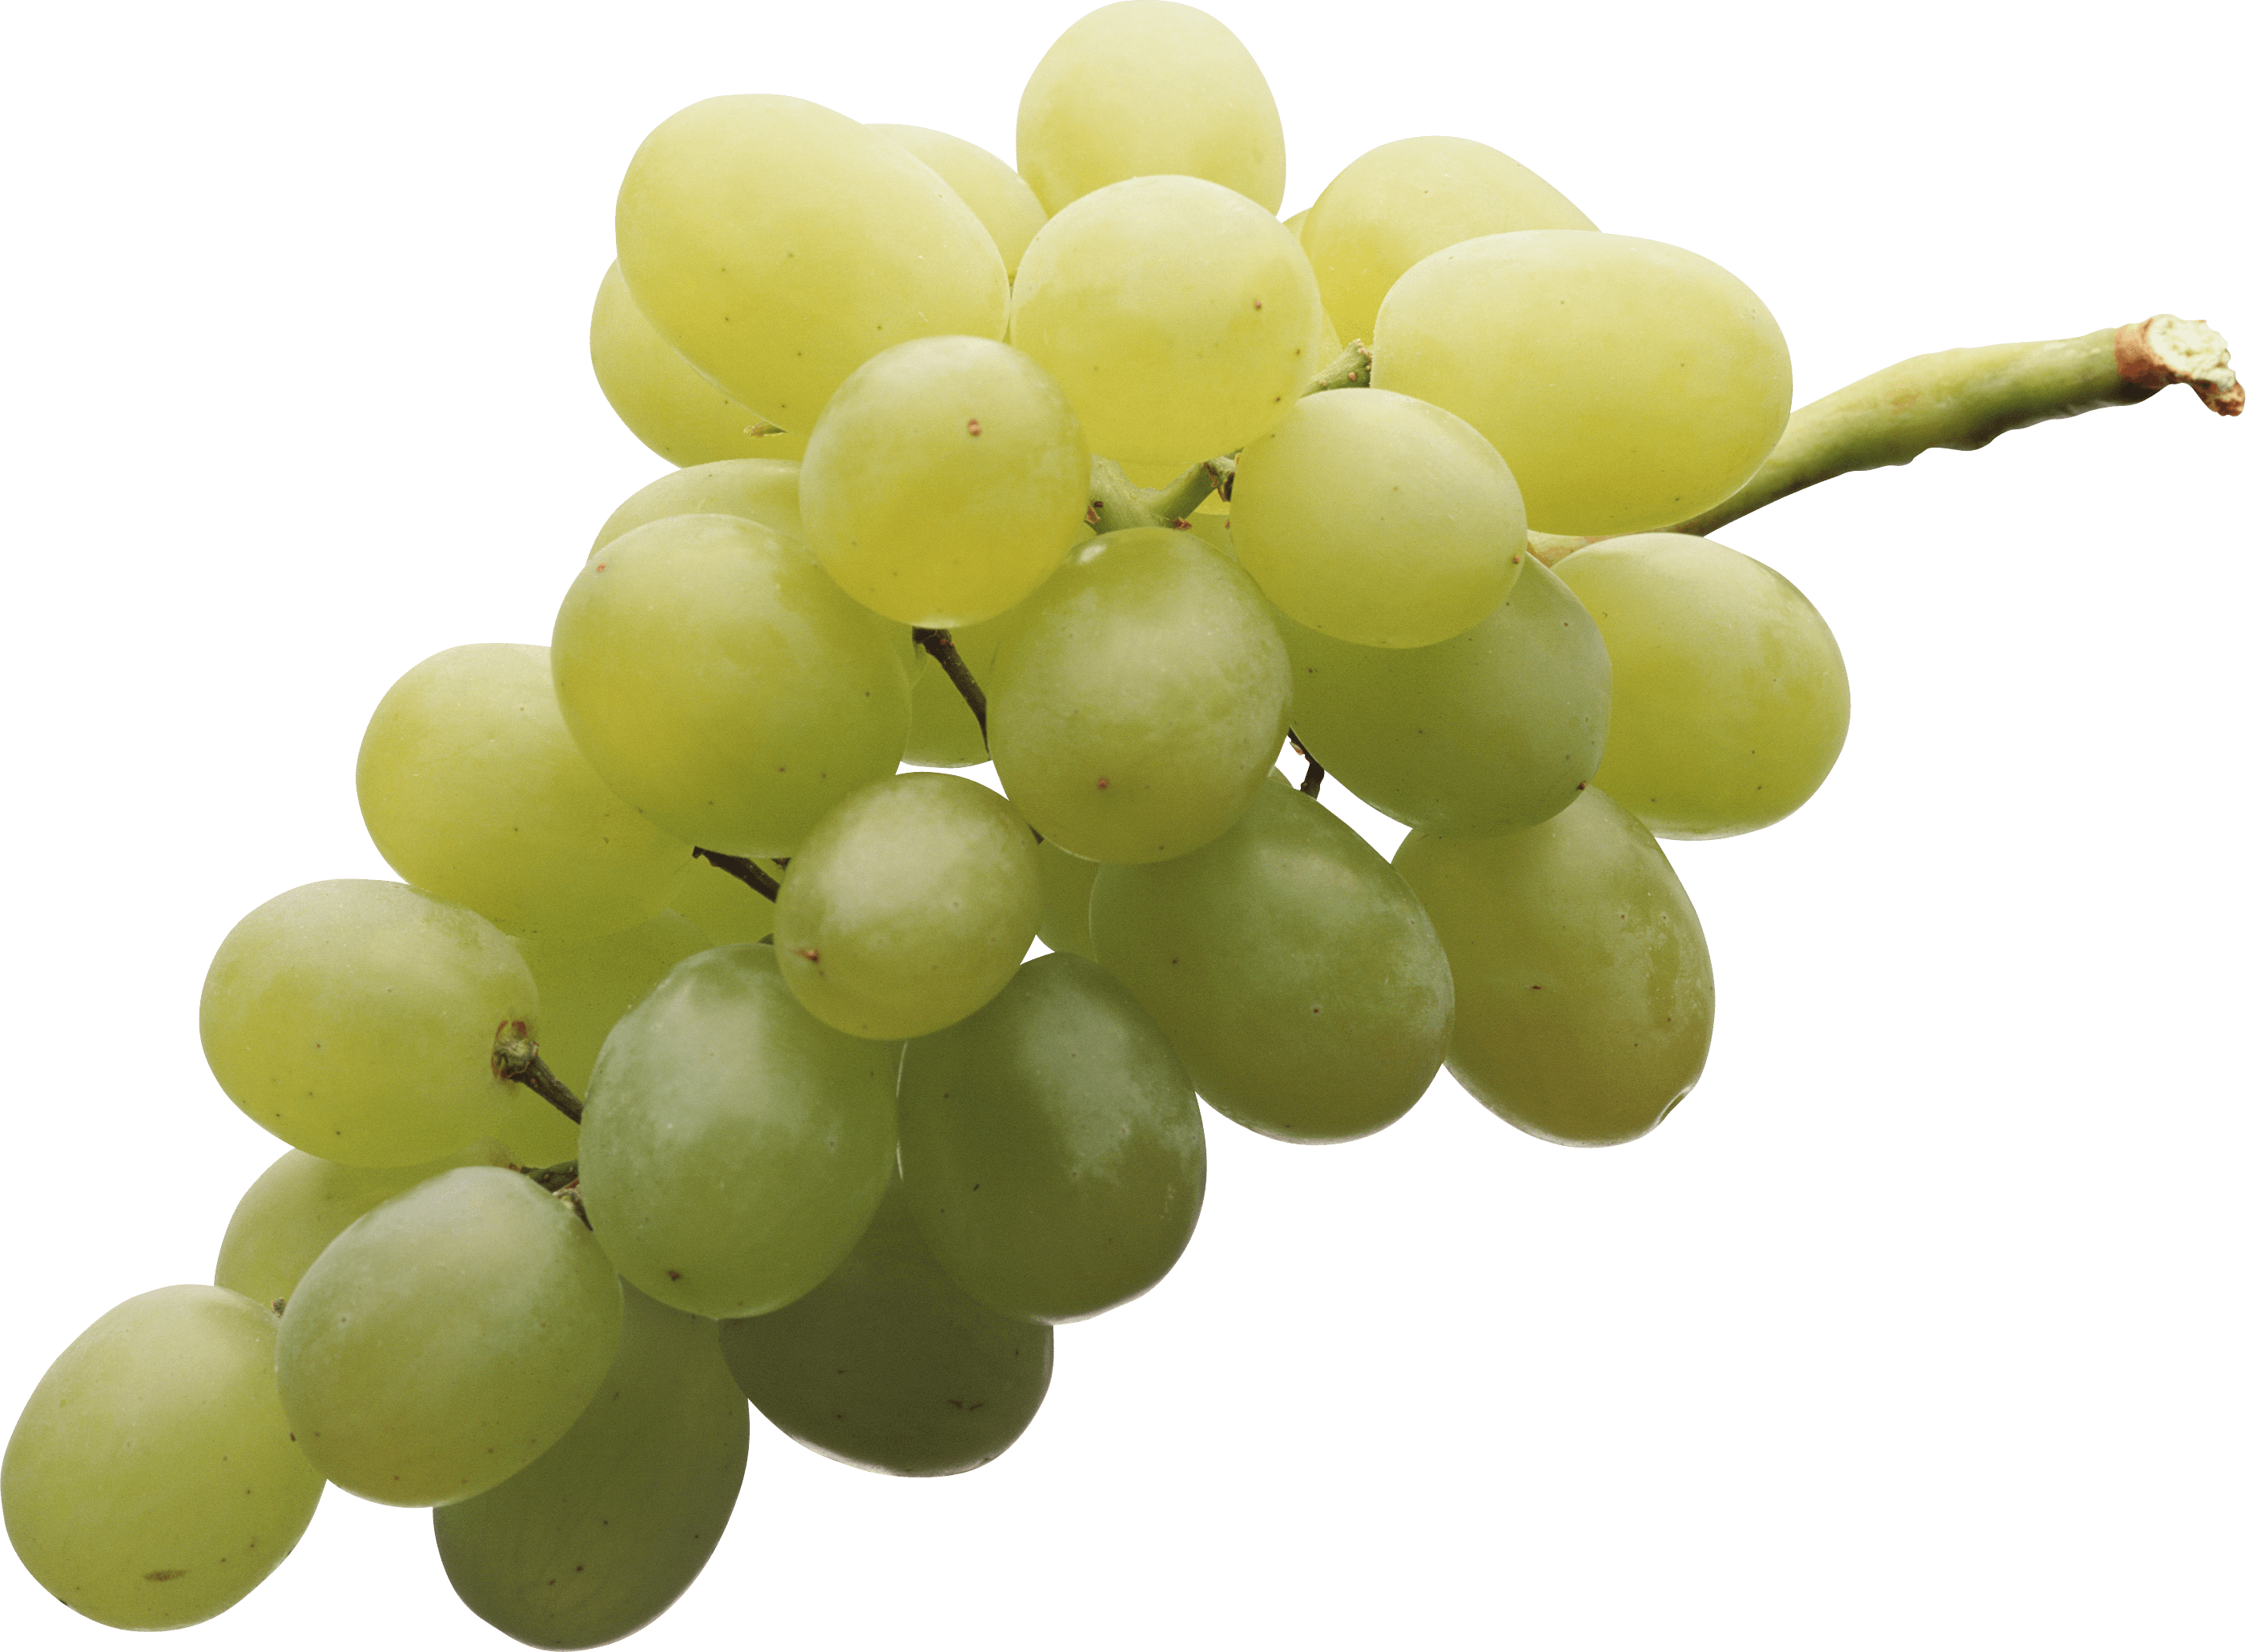 Isolated white grape png. Transparent grapes high quality vector freeuse stock